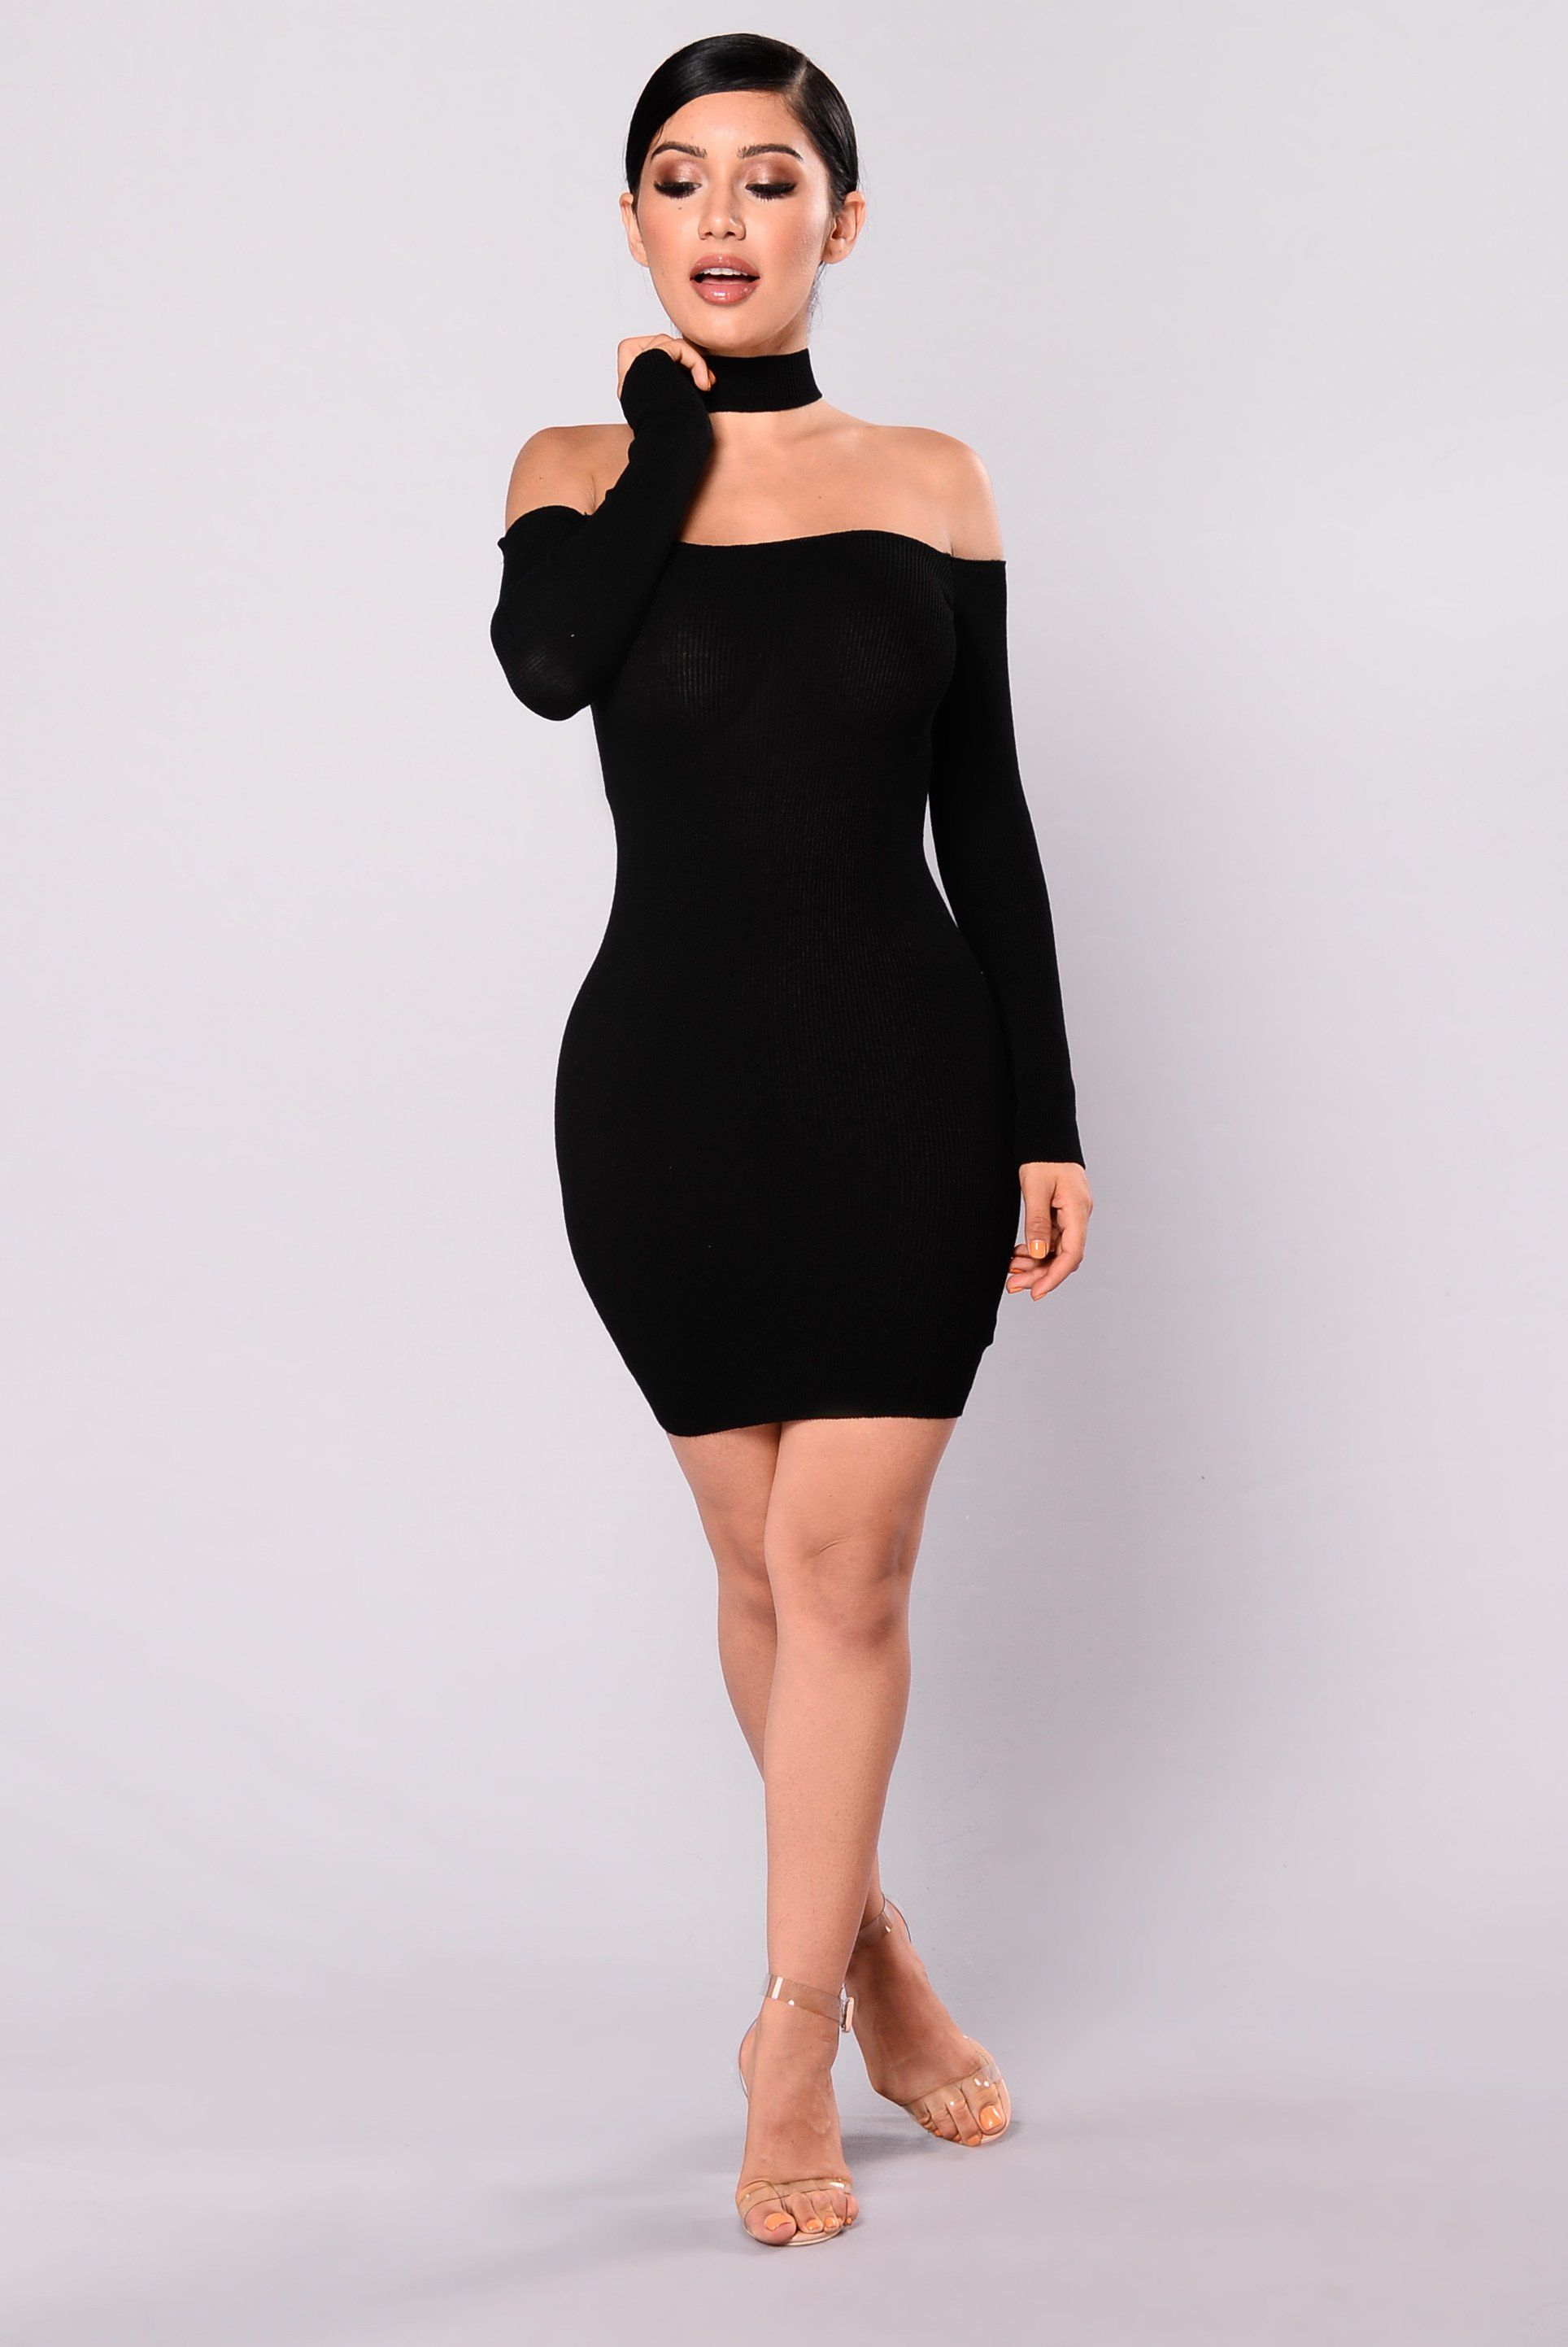 Image result for fashion nova black short dress